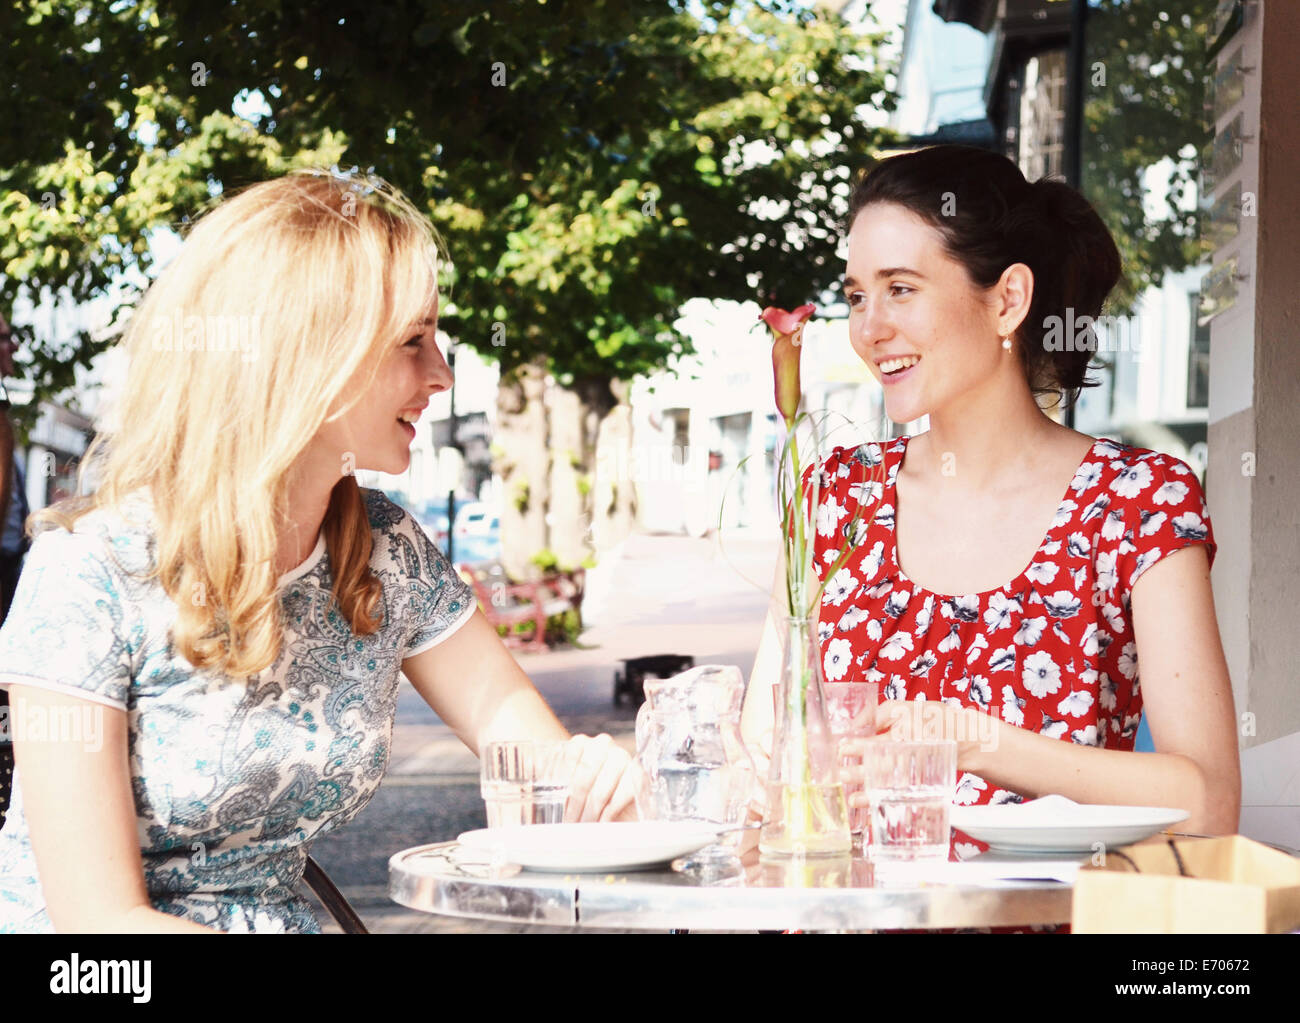 Two young women chatting at sidewalk cafe - Stock Image